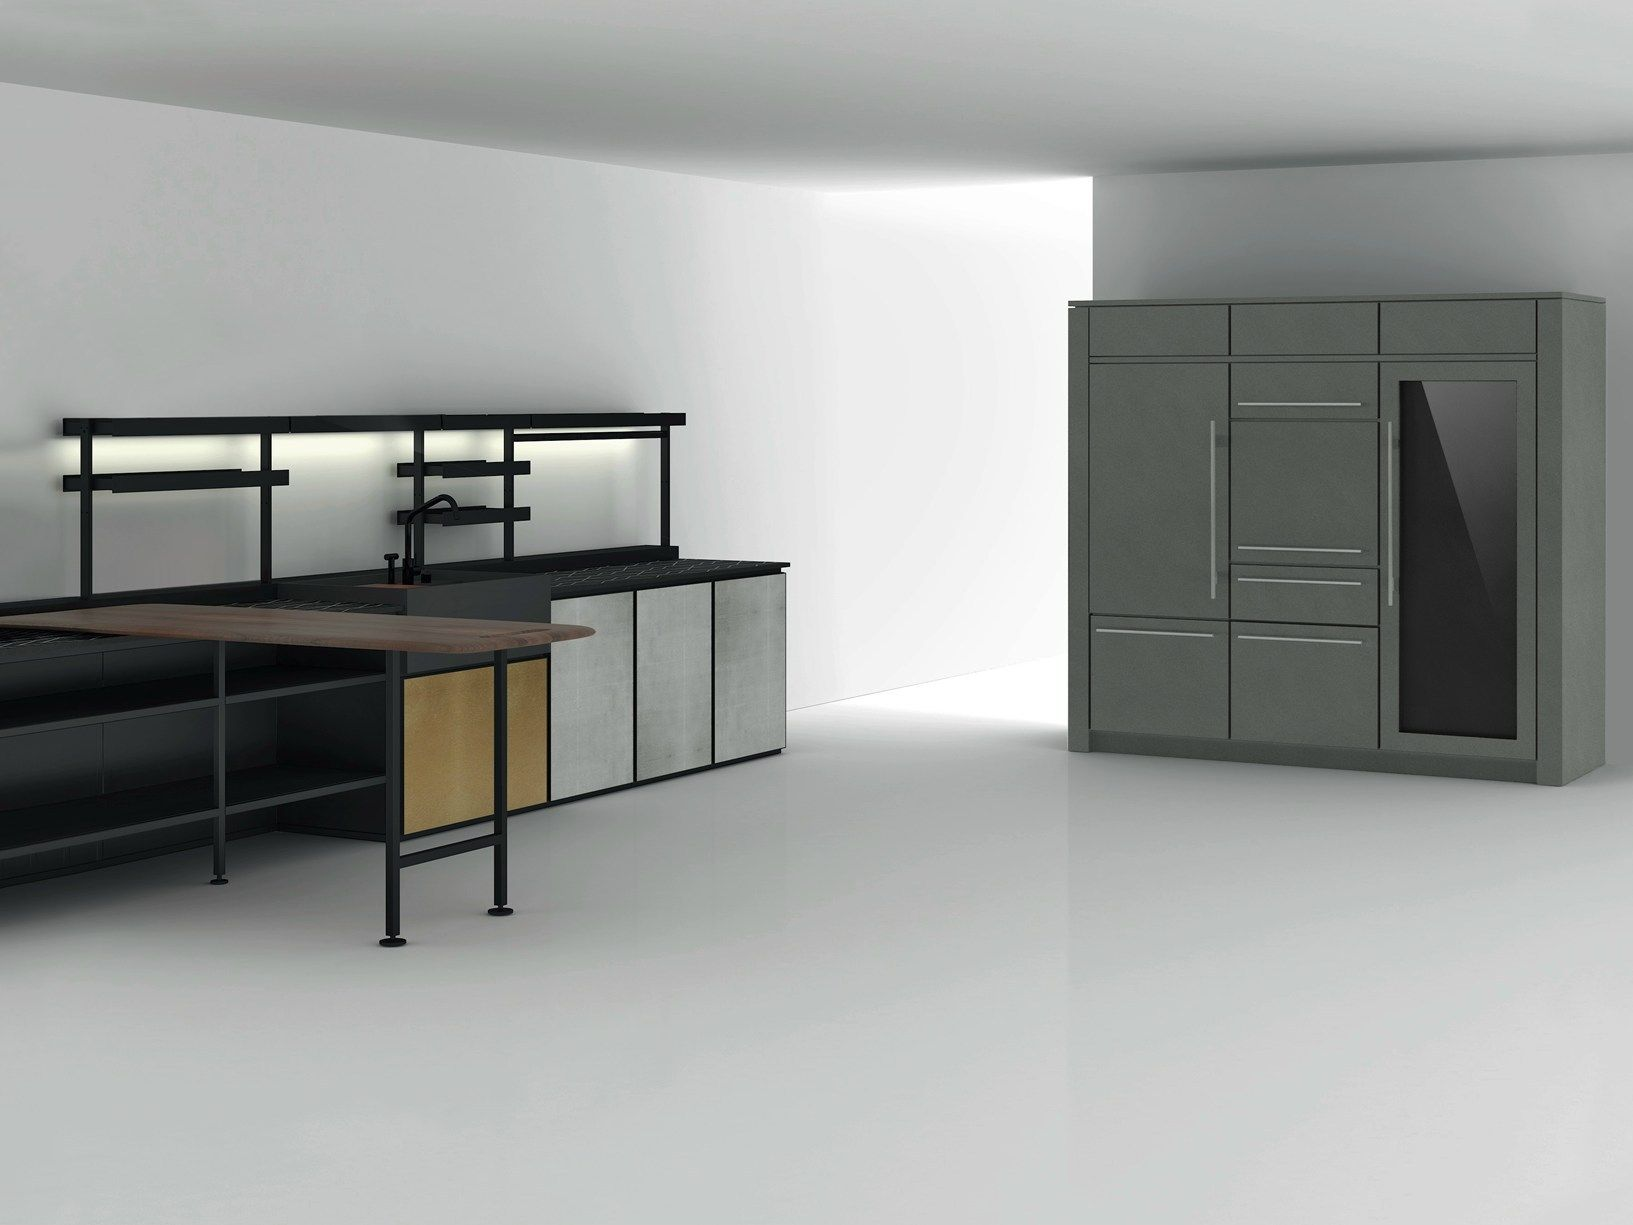 boffi k ln presents the latest kitchen bathroom and. Black Bedroom Furniture Sets. Home Design Ideas